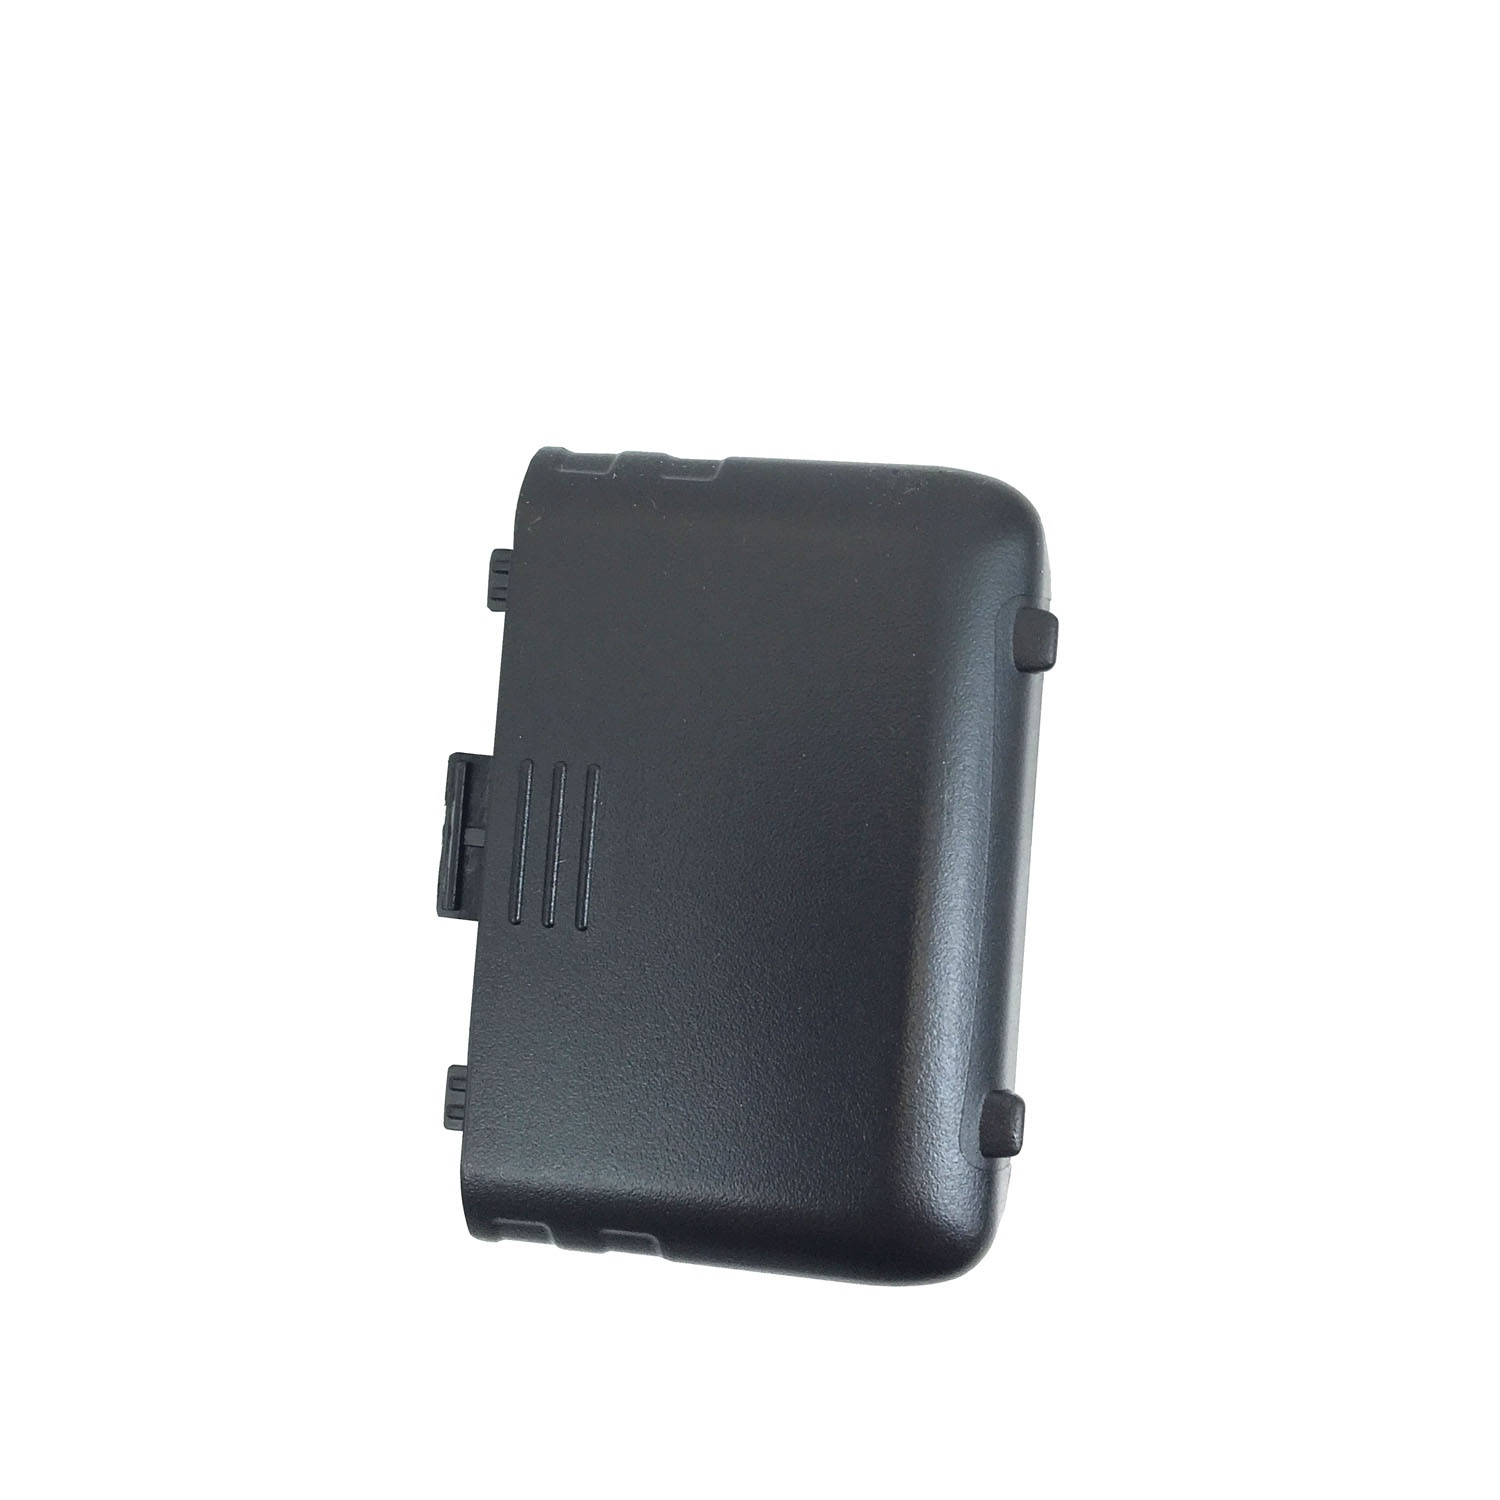 GBT102611ZZ - Uniden Replacement Battery Cover For BC125AT, BCD325P2